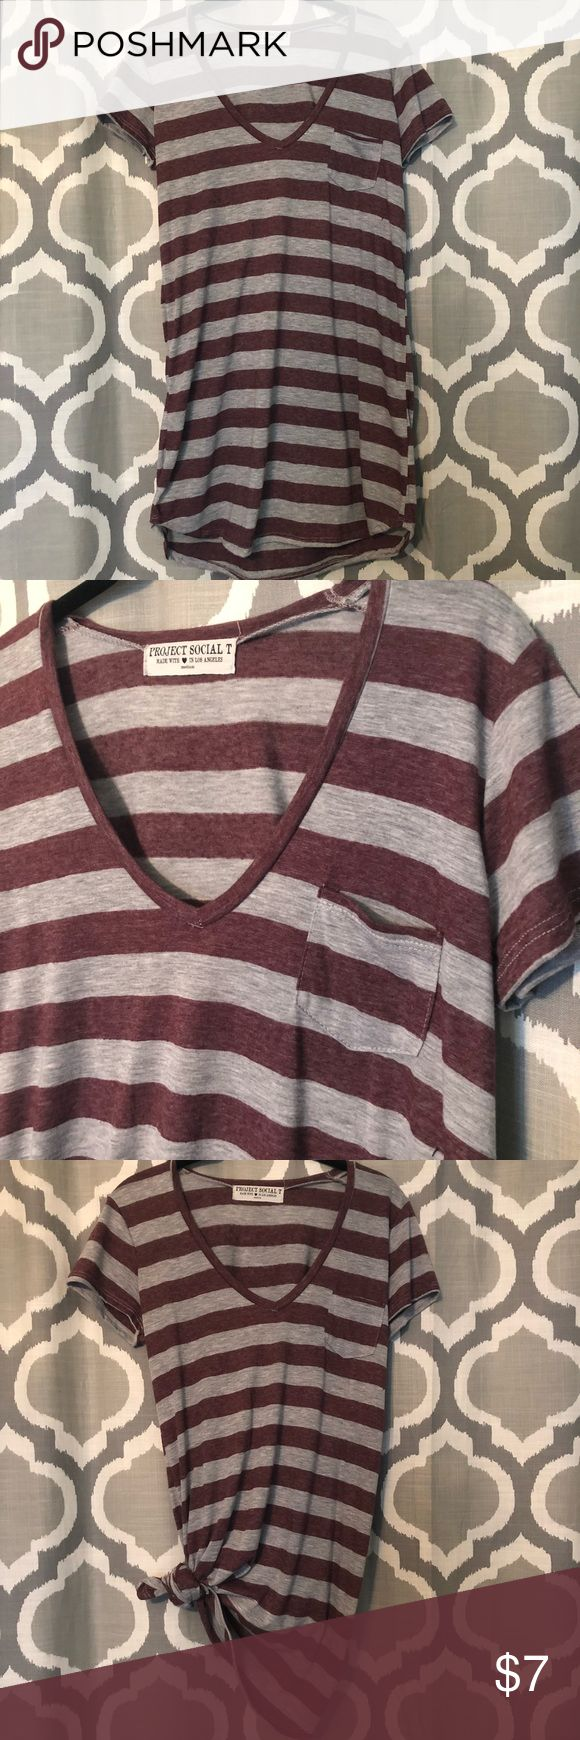 Long tshirt, v neck, stripped, with pocket. Comfy! Would look cute with leggings or jeans! Pair with a faux leather jacket or long cardigan for a perfect look! Basically NWOT, only worn for maybe a few hours. Bought at Nordstrom Rack Nordstrom Tops Tunics